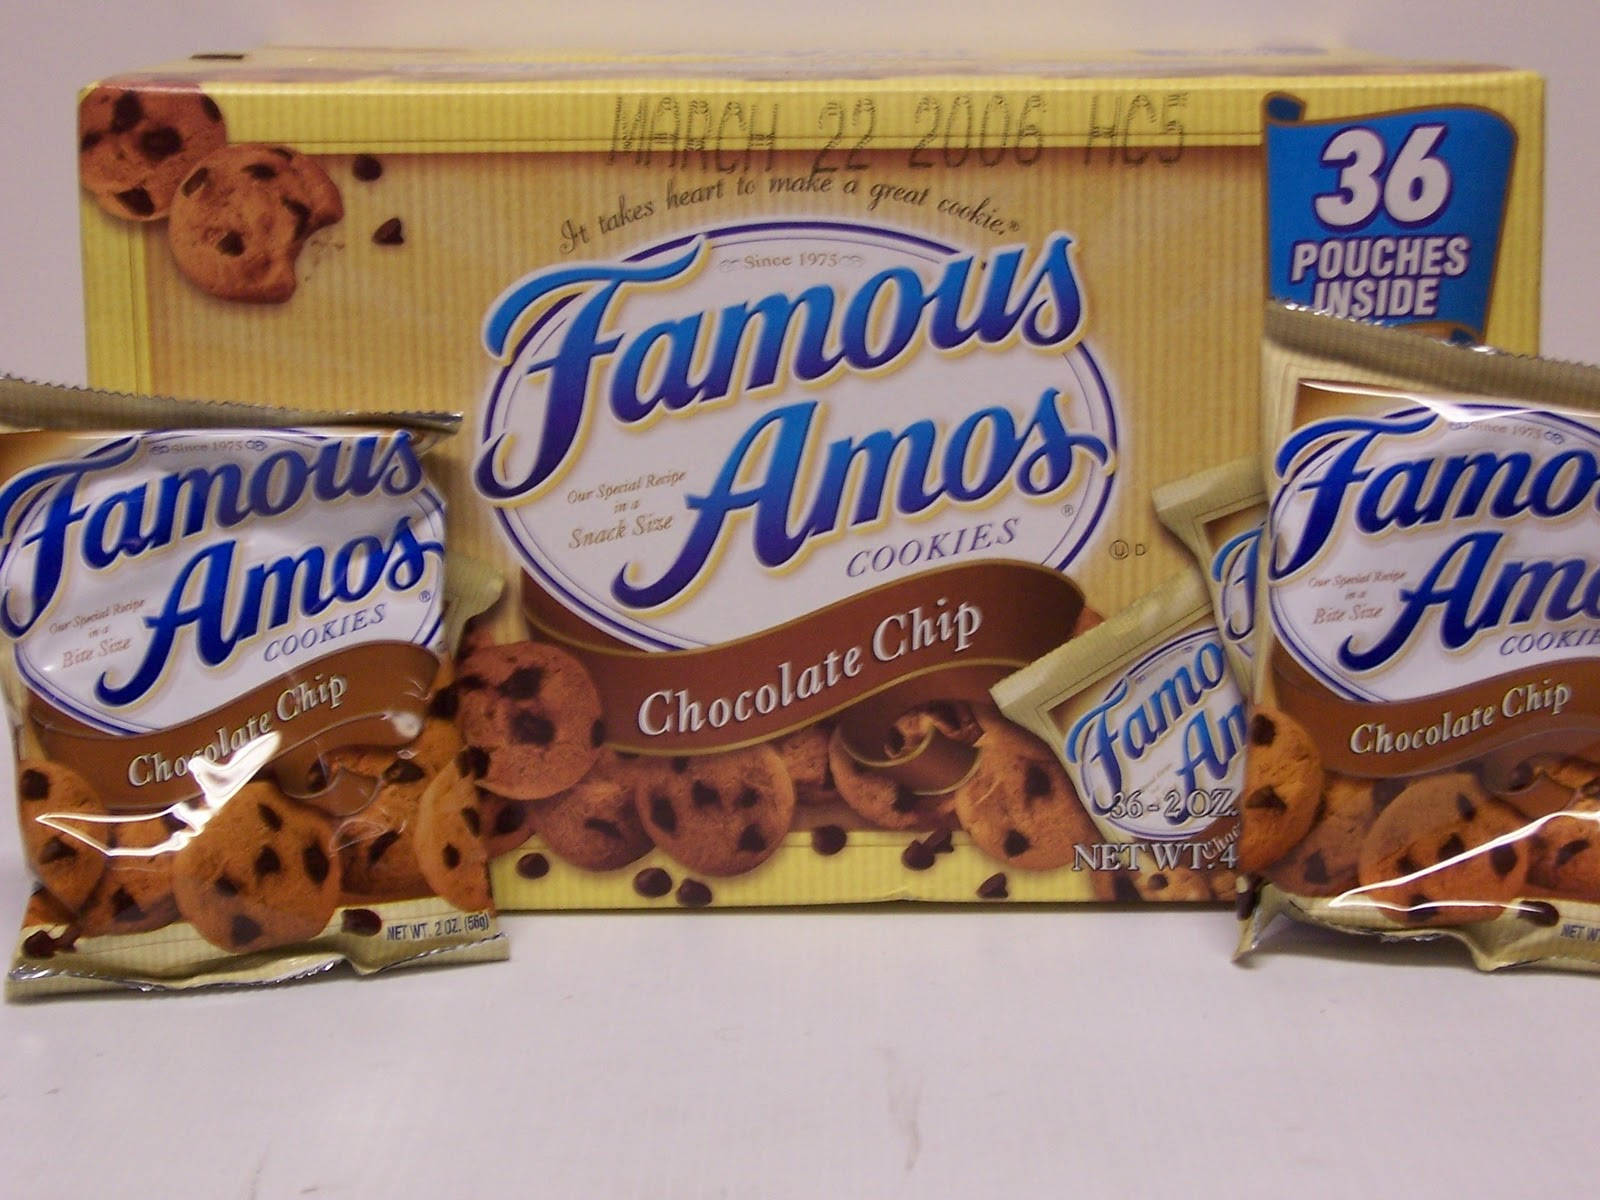 Worksheet Famous Amos images famous amos before wally bamosb became bfamous